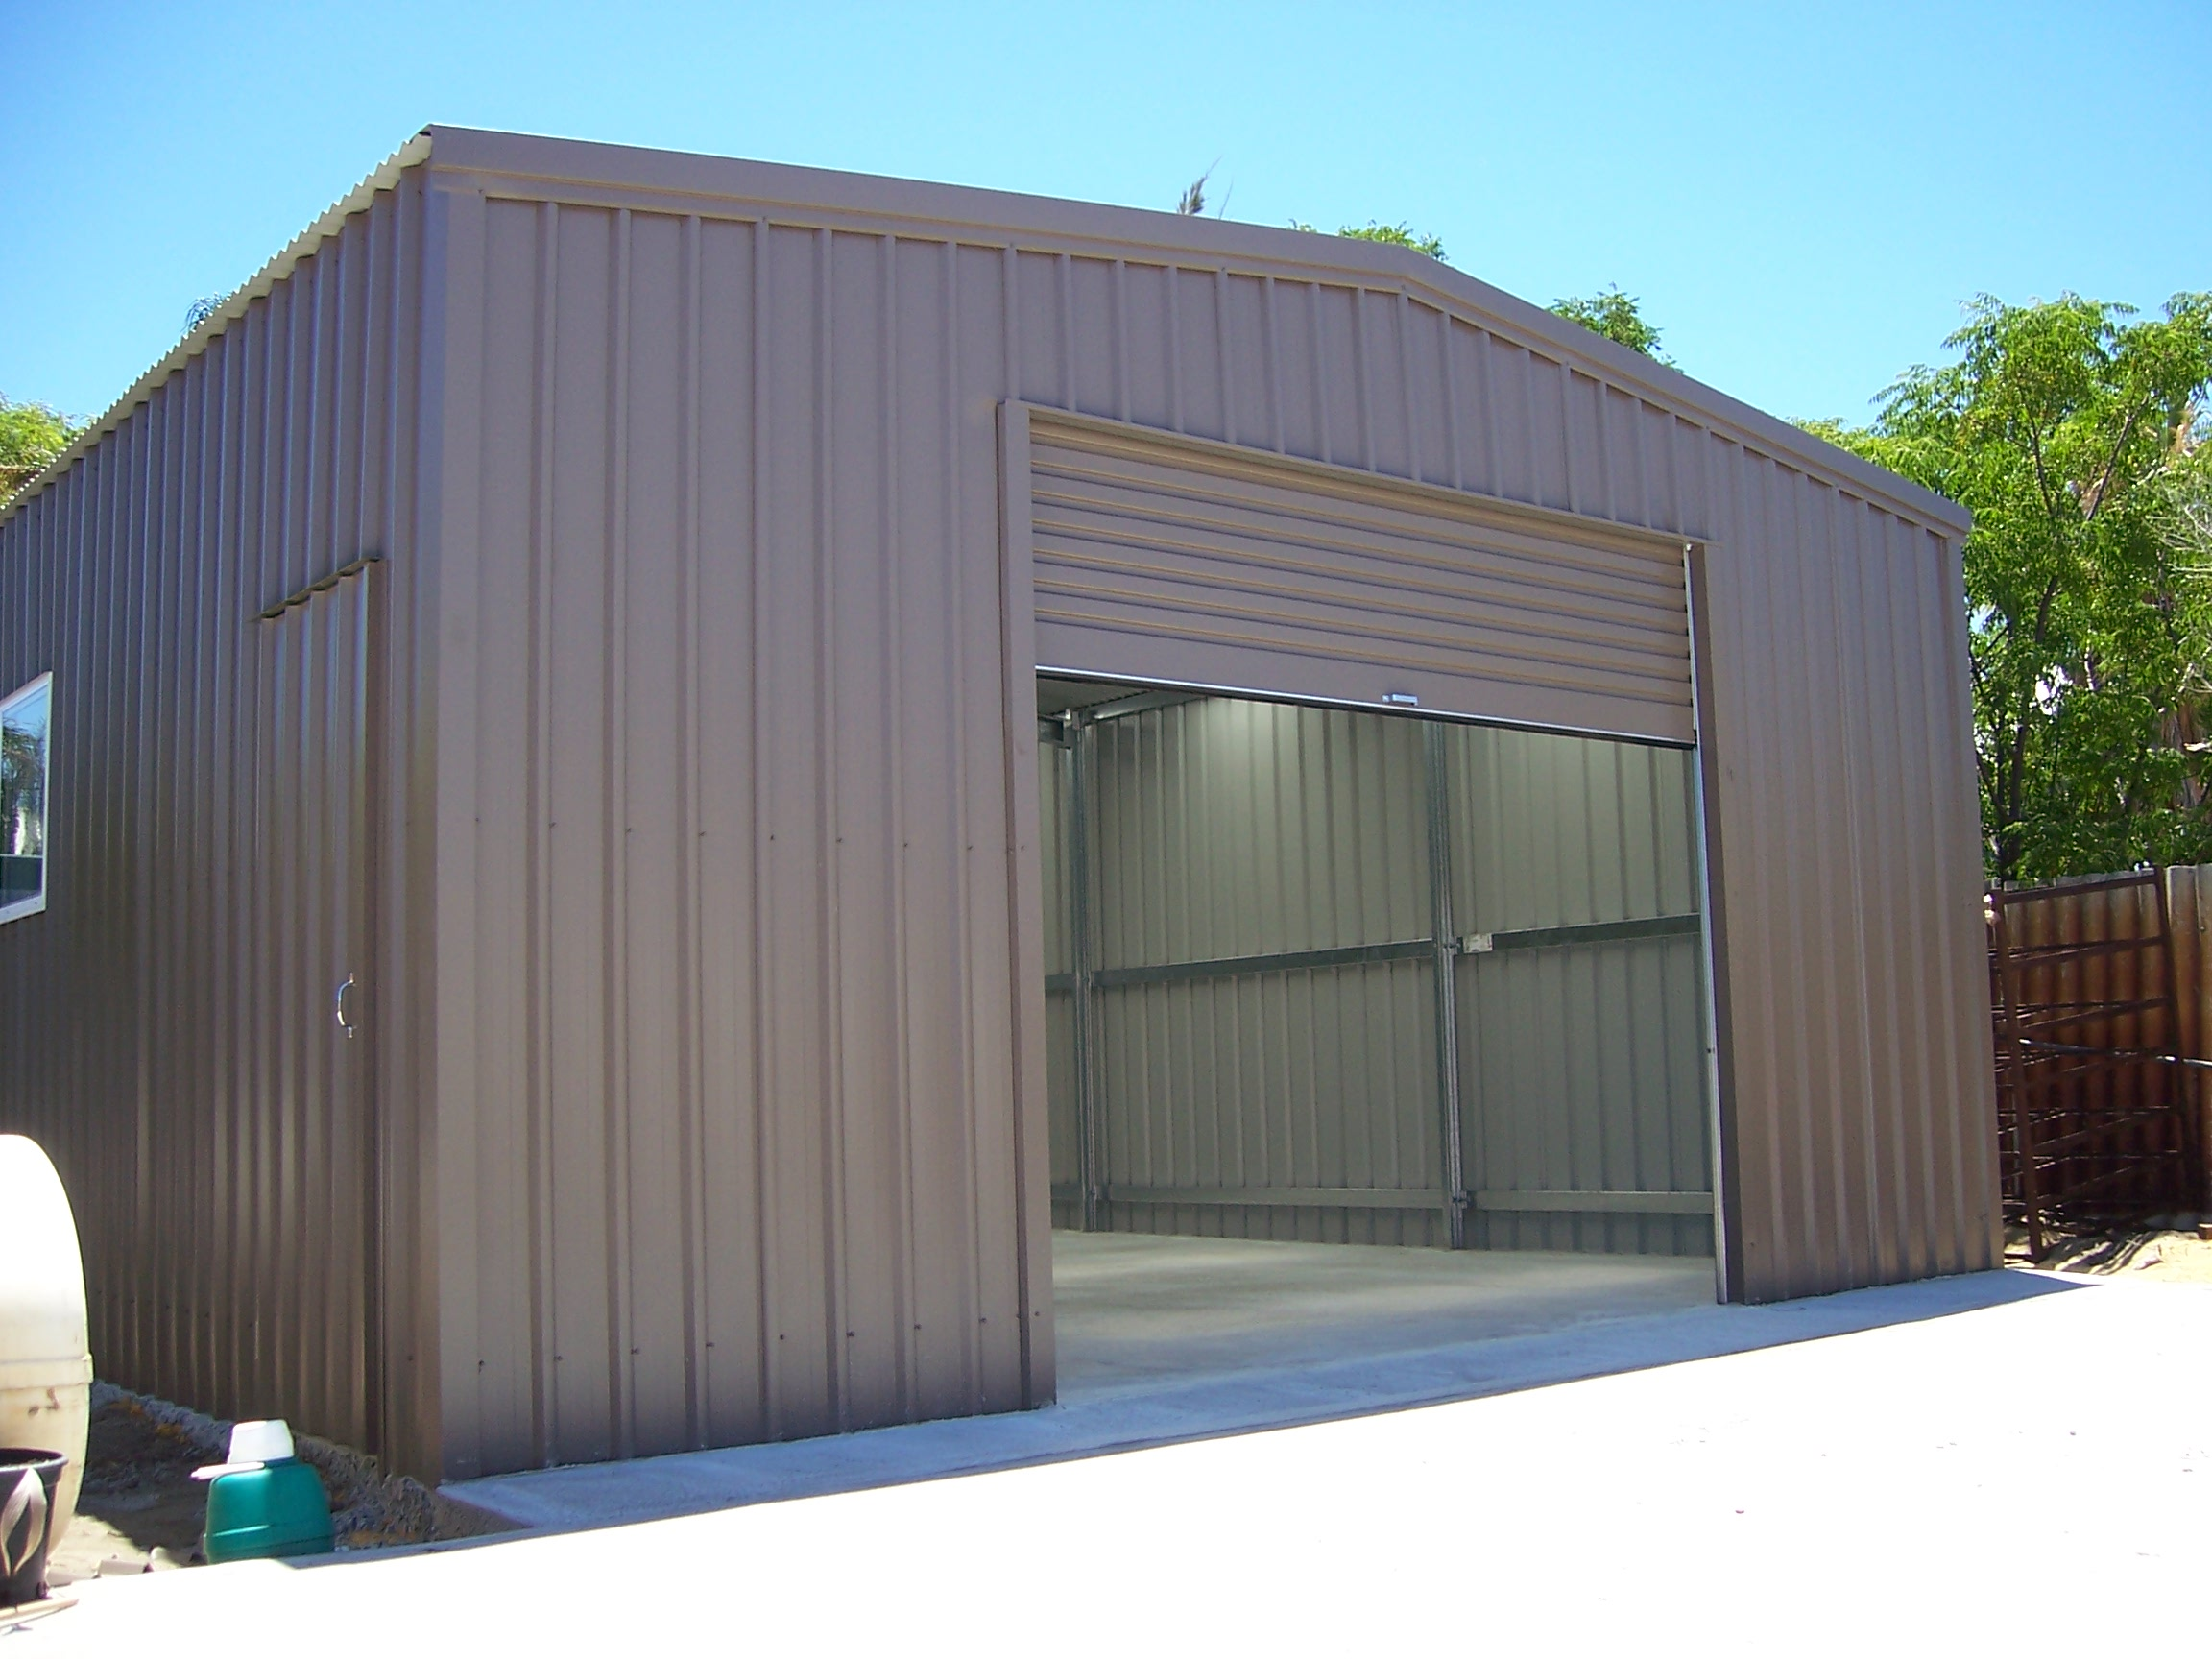 Garage Sheds Perth Australian Made With Colorbond Steel